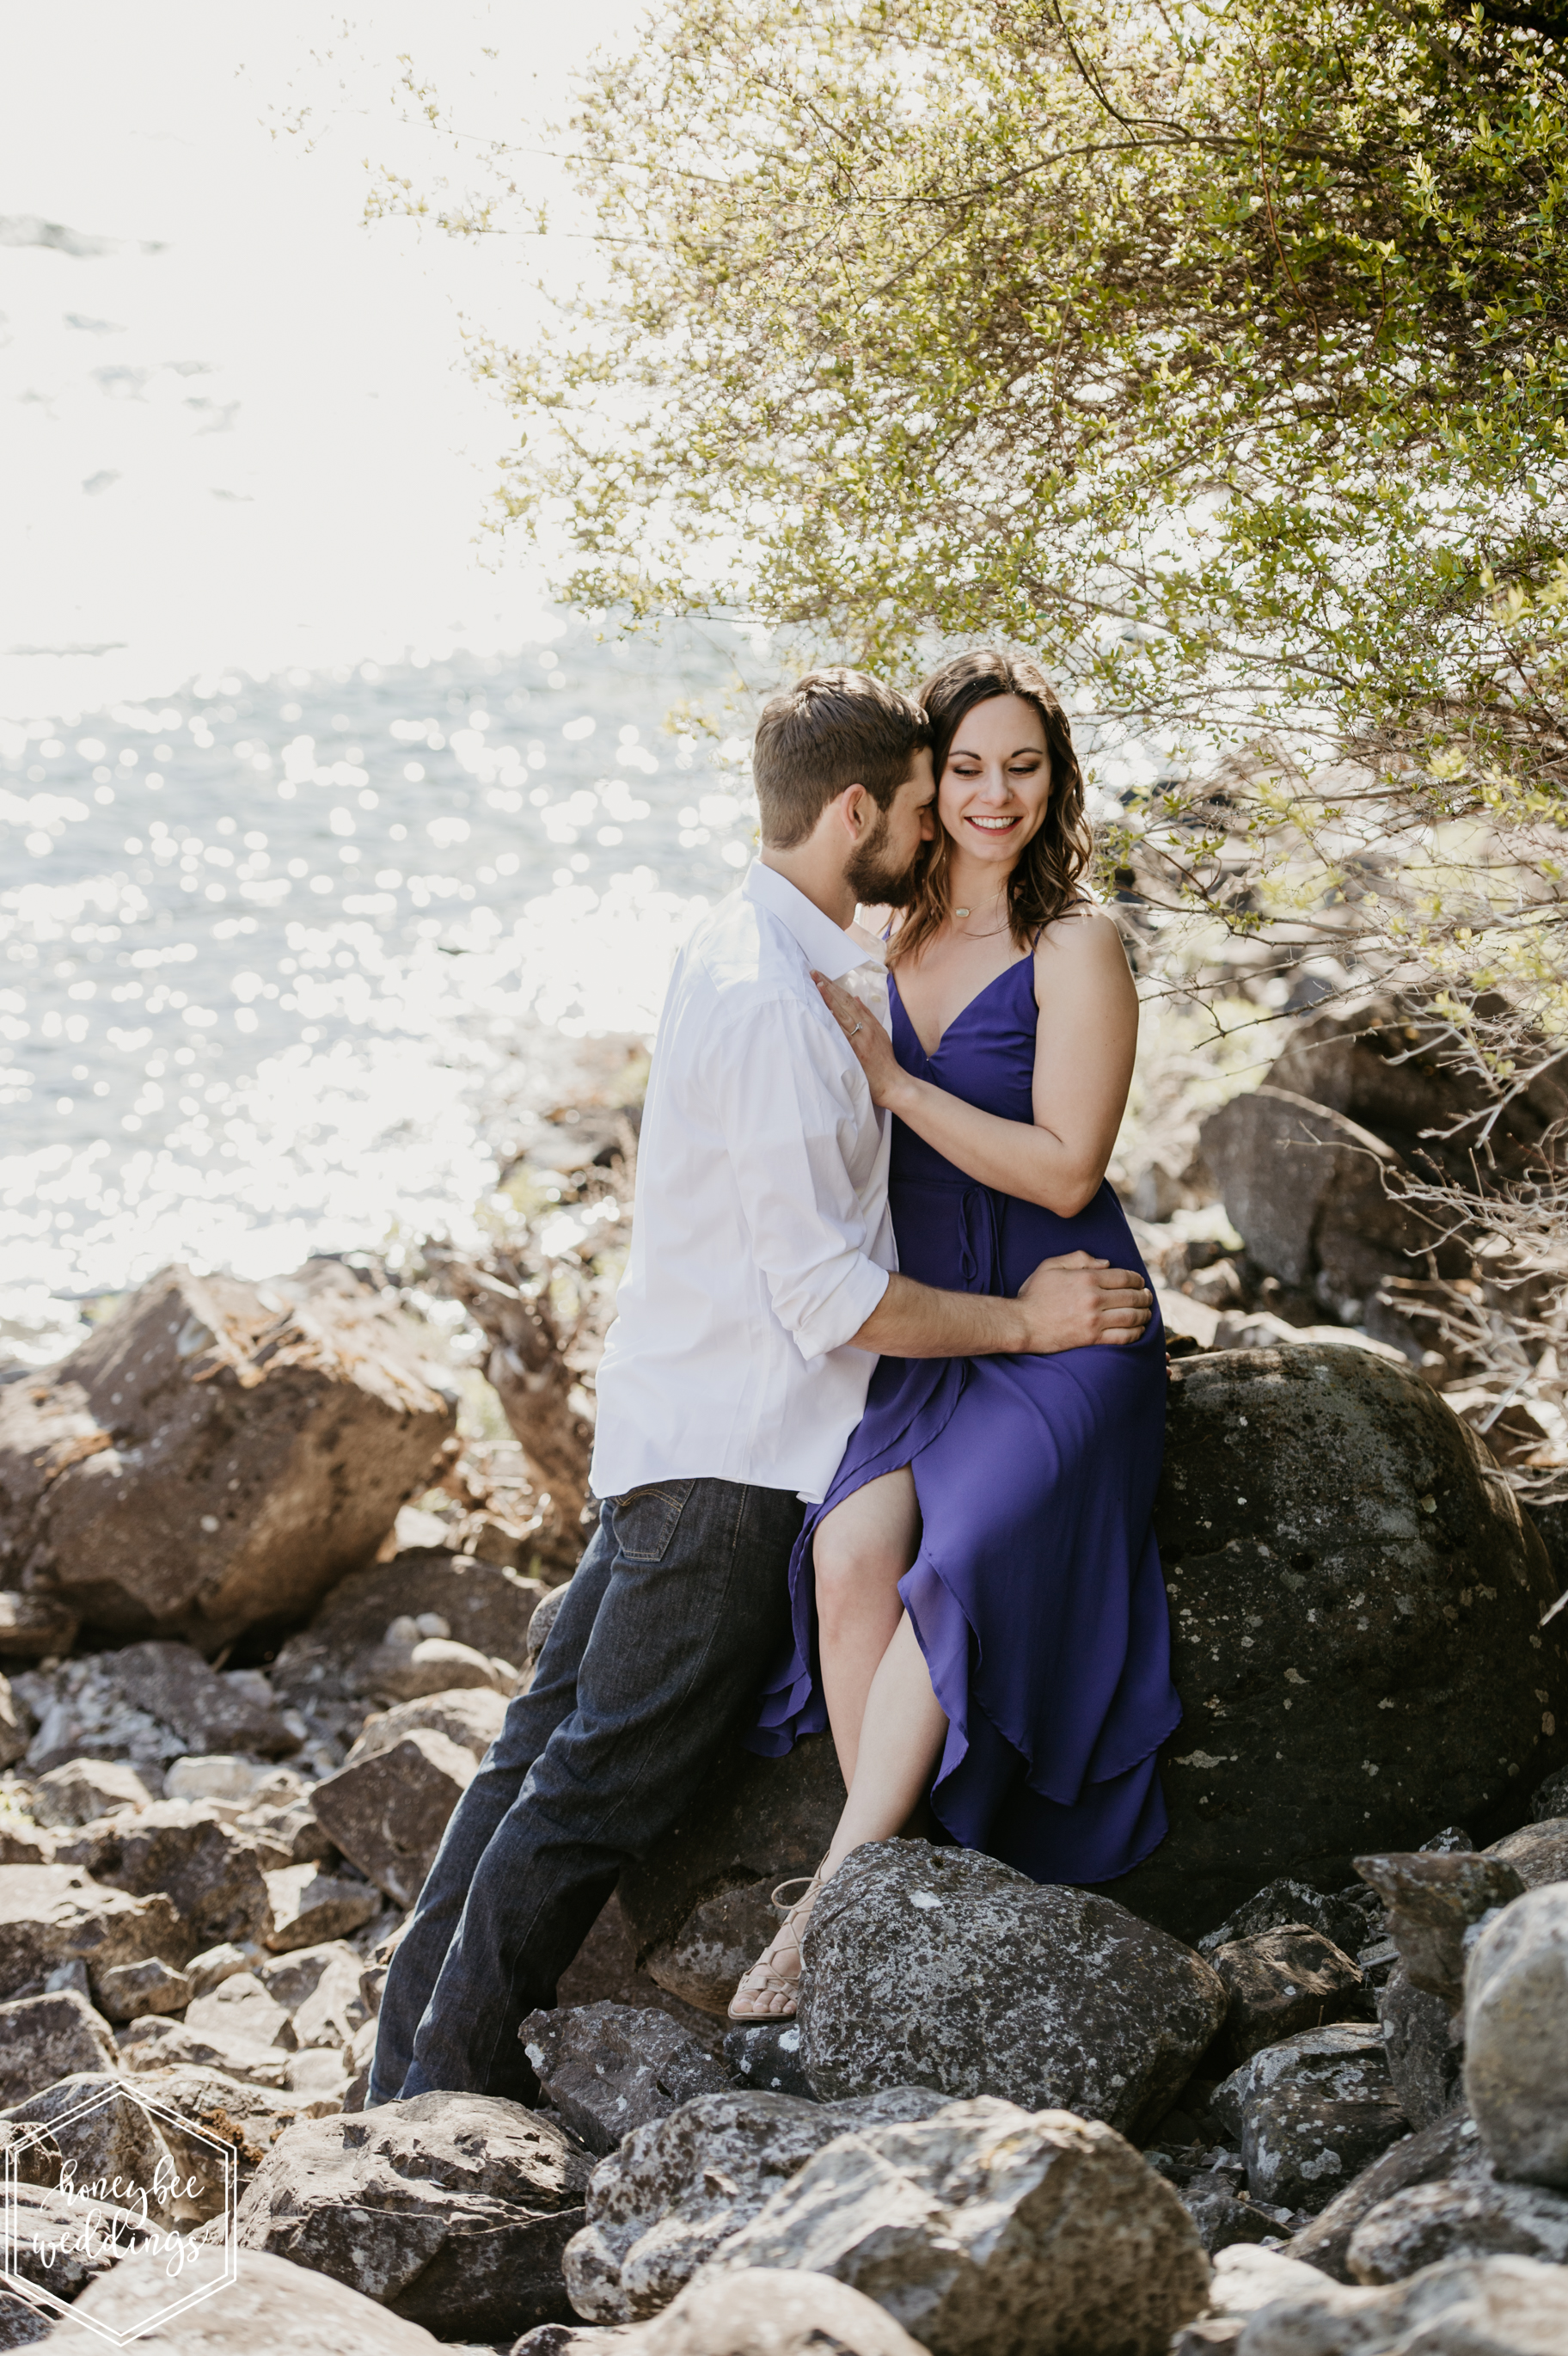 082Montana Wedding Photographer_Polson Engagement Session_Carrie & Matt_Honeybee Weddings_May 11, 2019-86.jpg